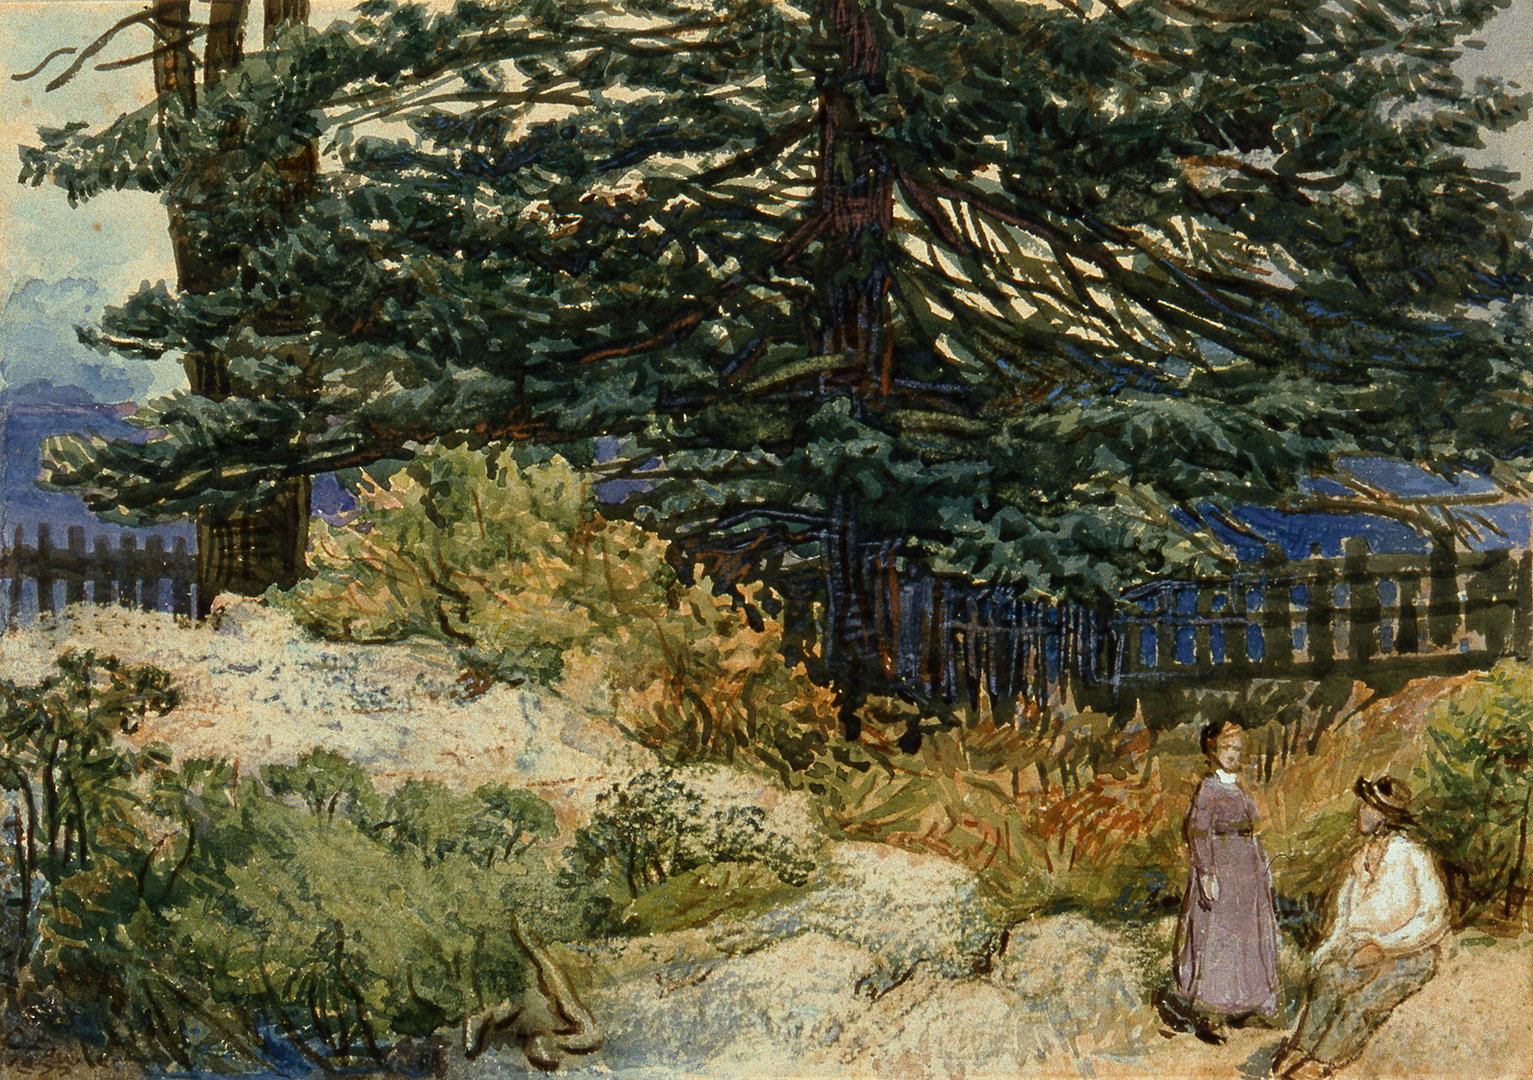 The central element of this landscape is a broad-branched evergreen that occupies the upper half of the painting. In front of the tree is a mound of white rocks surrounded by bushes. A woman and a man are sketchily rendered in the lower right corner.